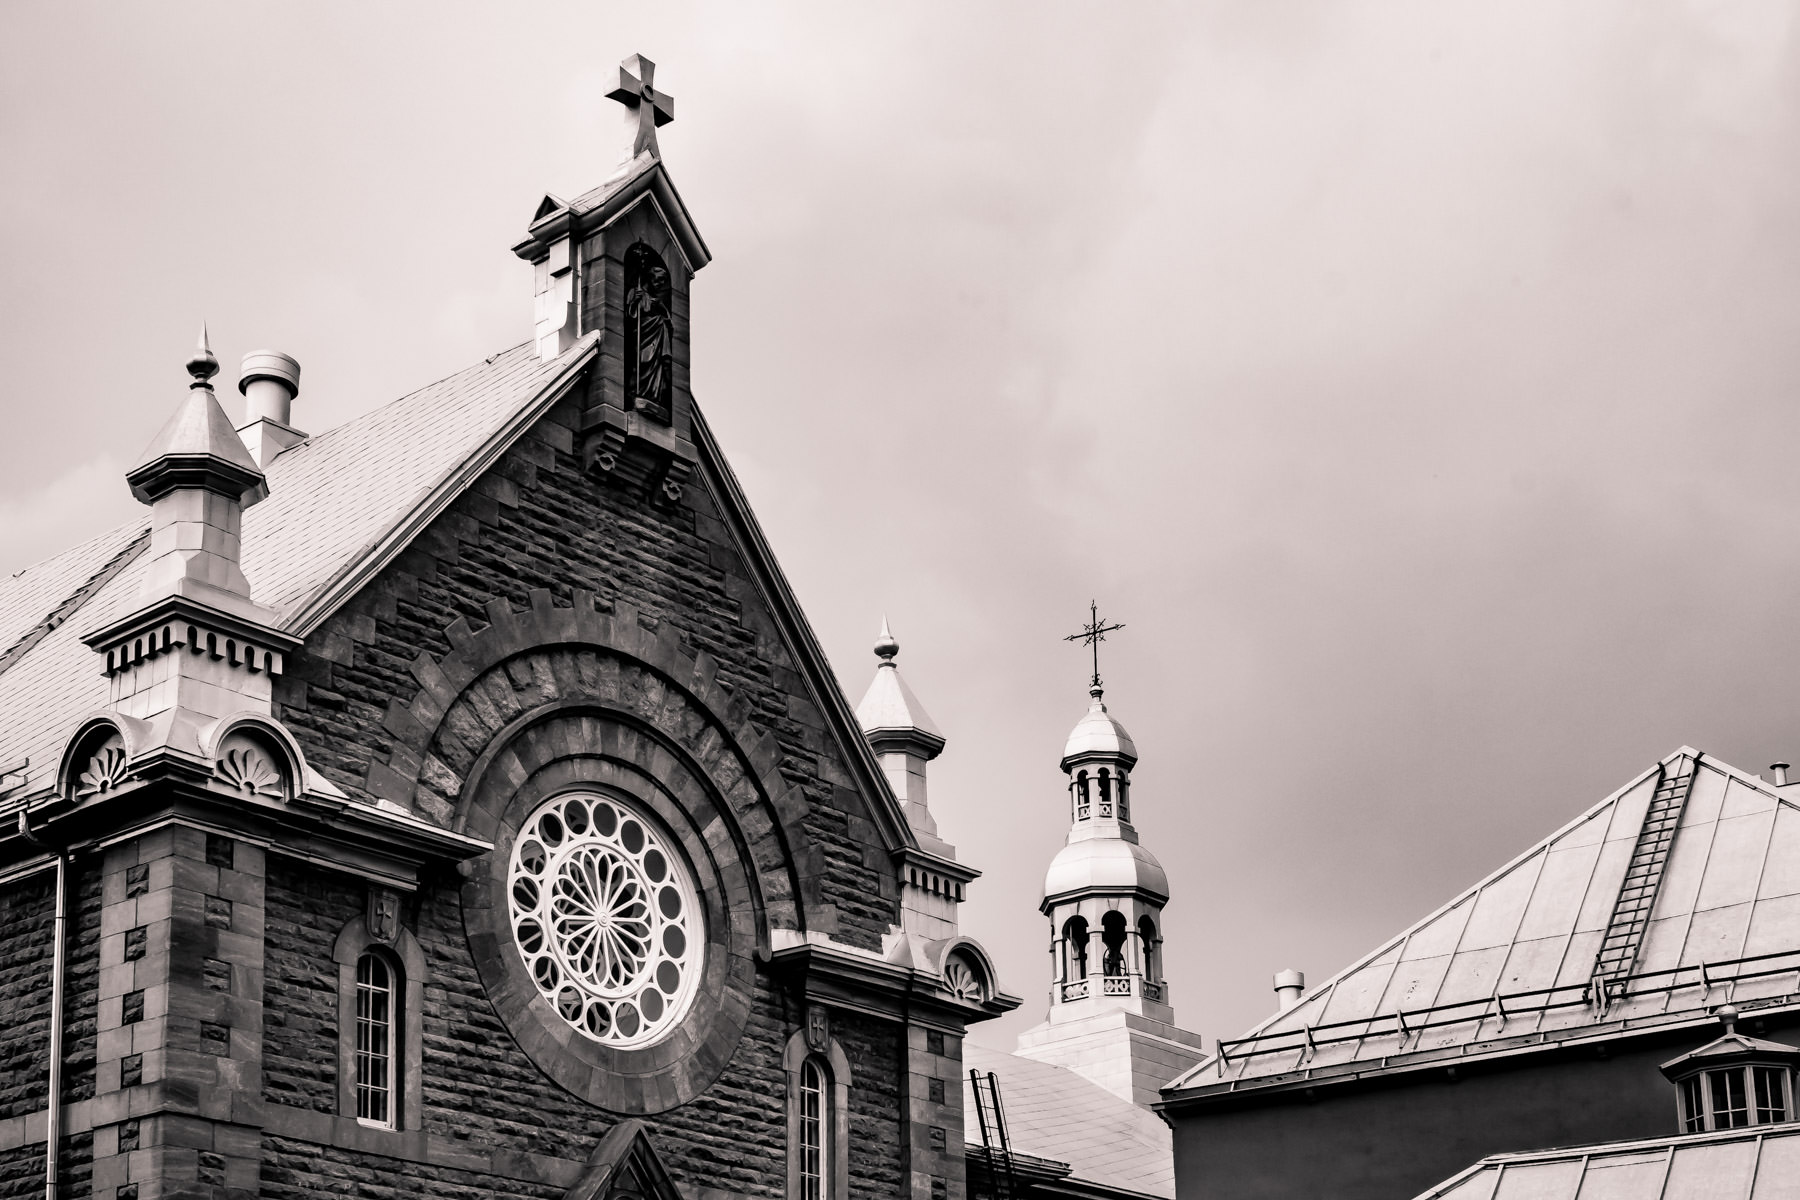 A church rises into the overcast sky in Québec City, Canada.